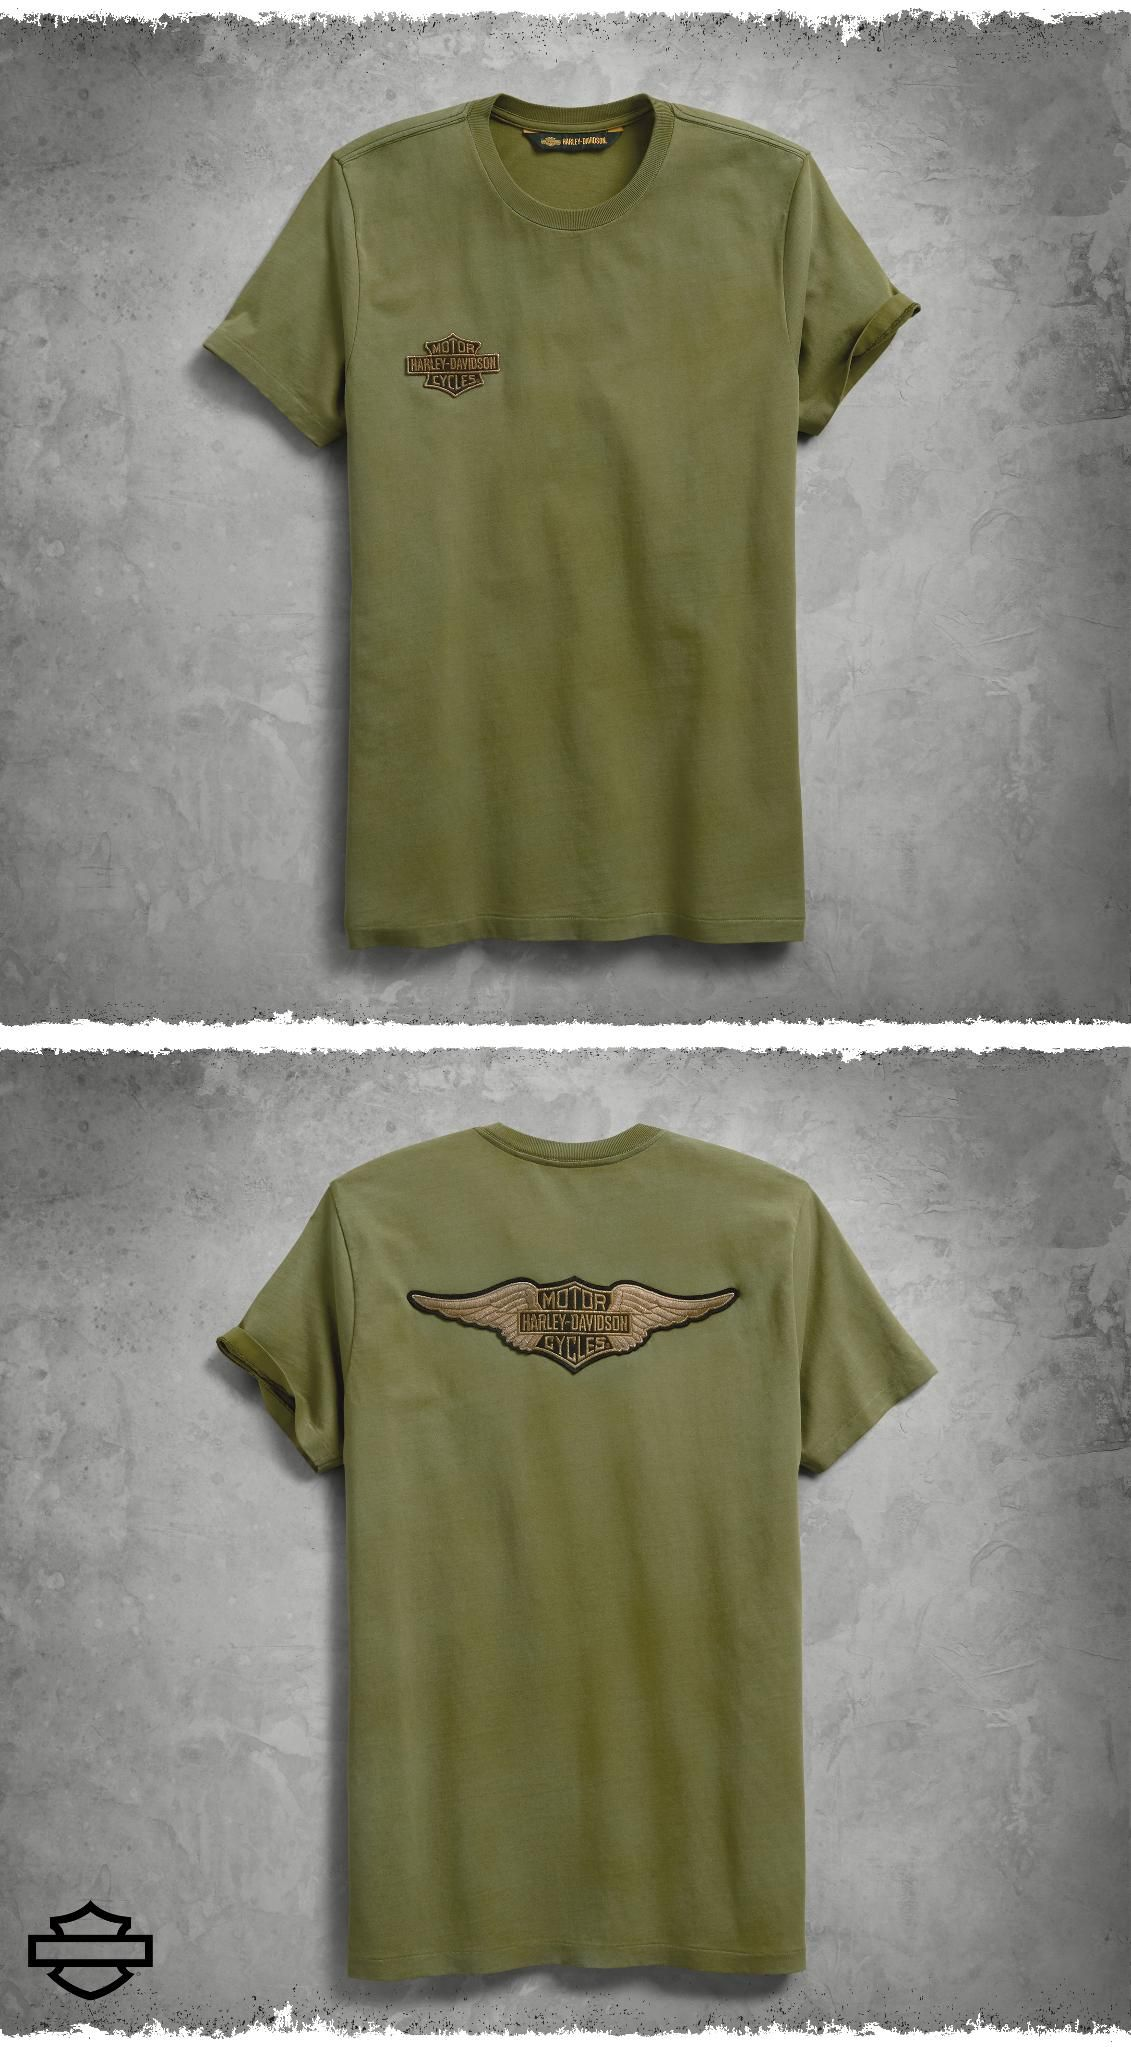 ROCK ANGEL Womens T-Shirt in Khaki with Fadings Green in Size Small